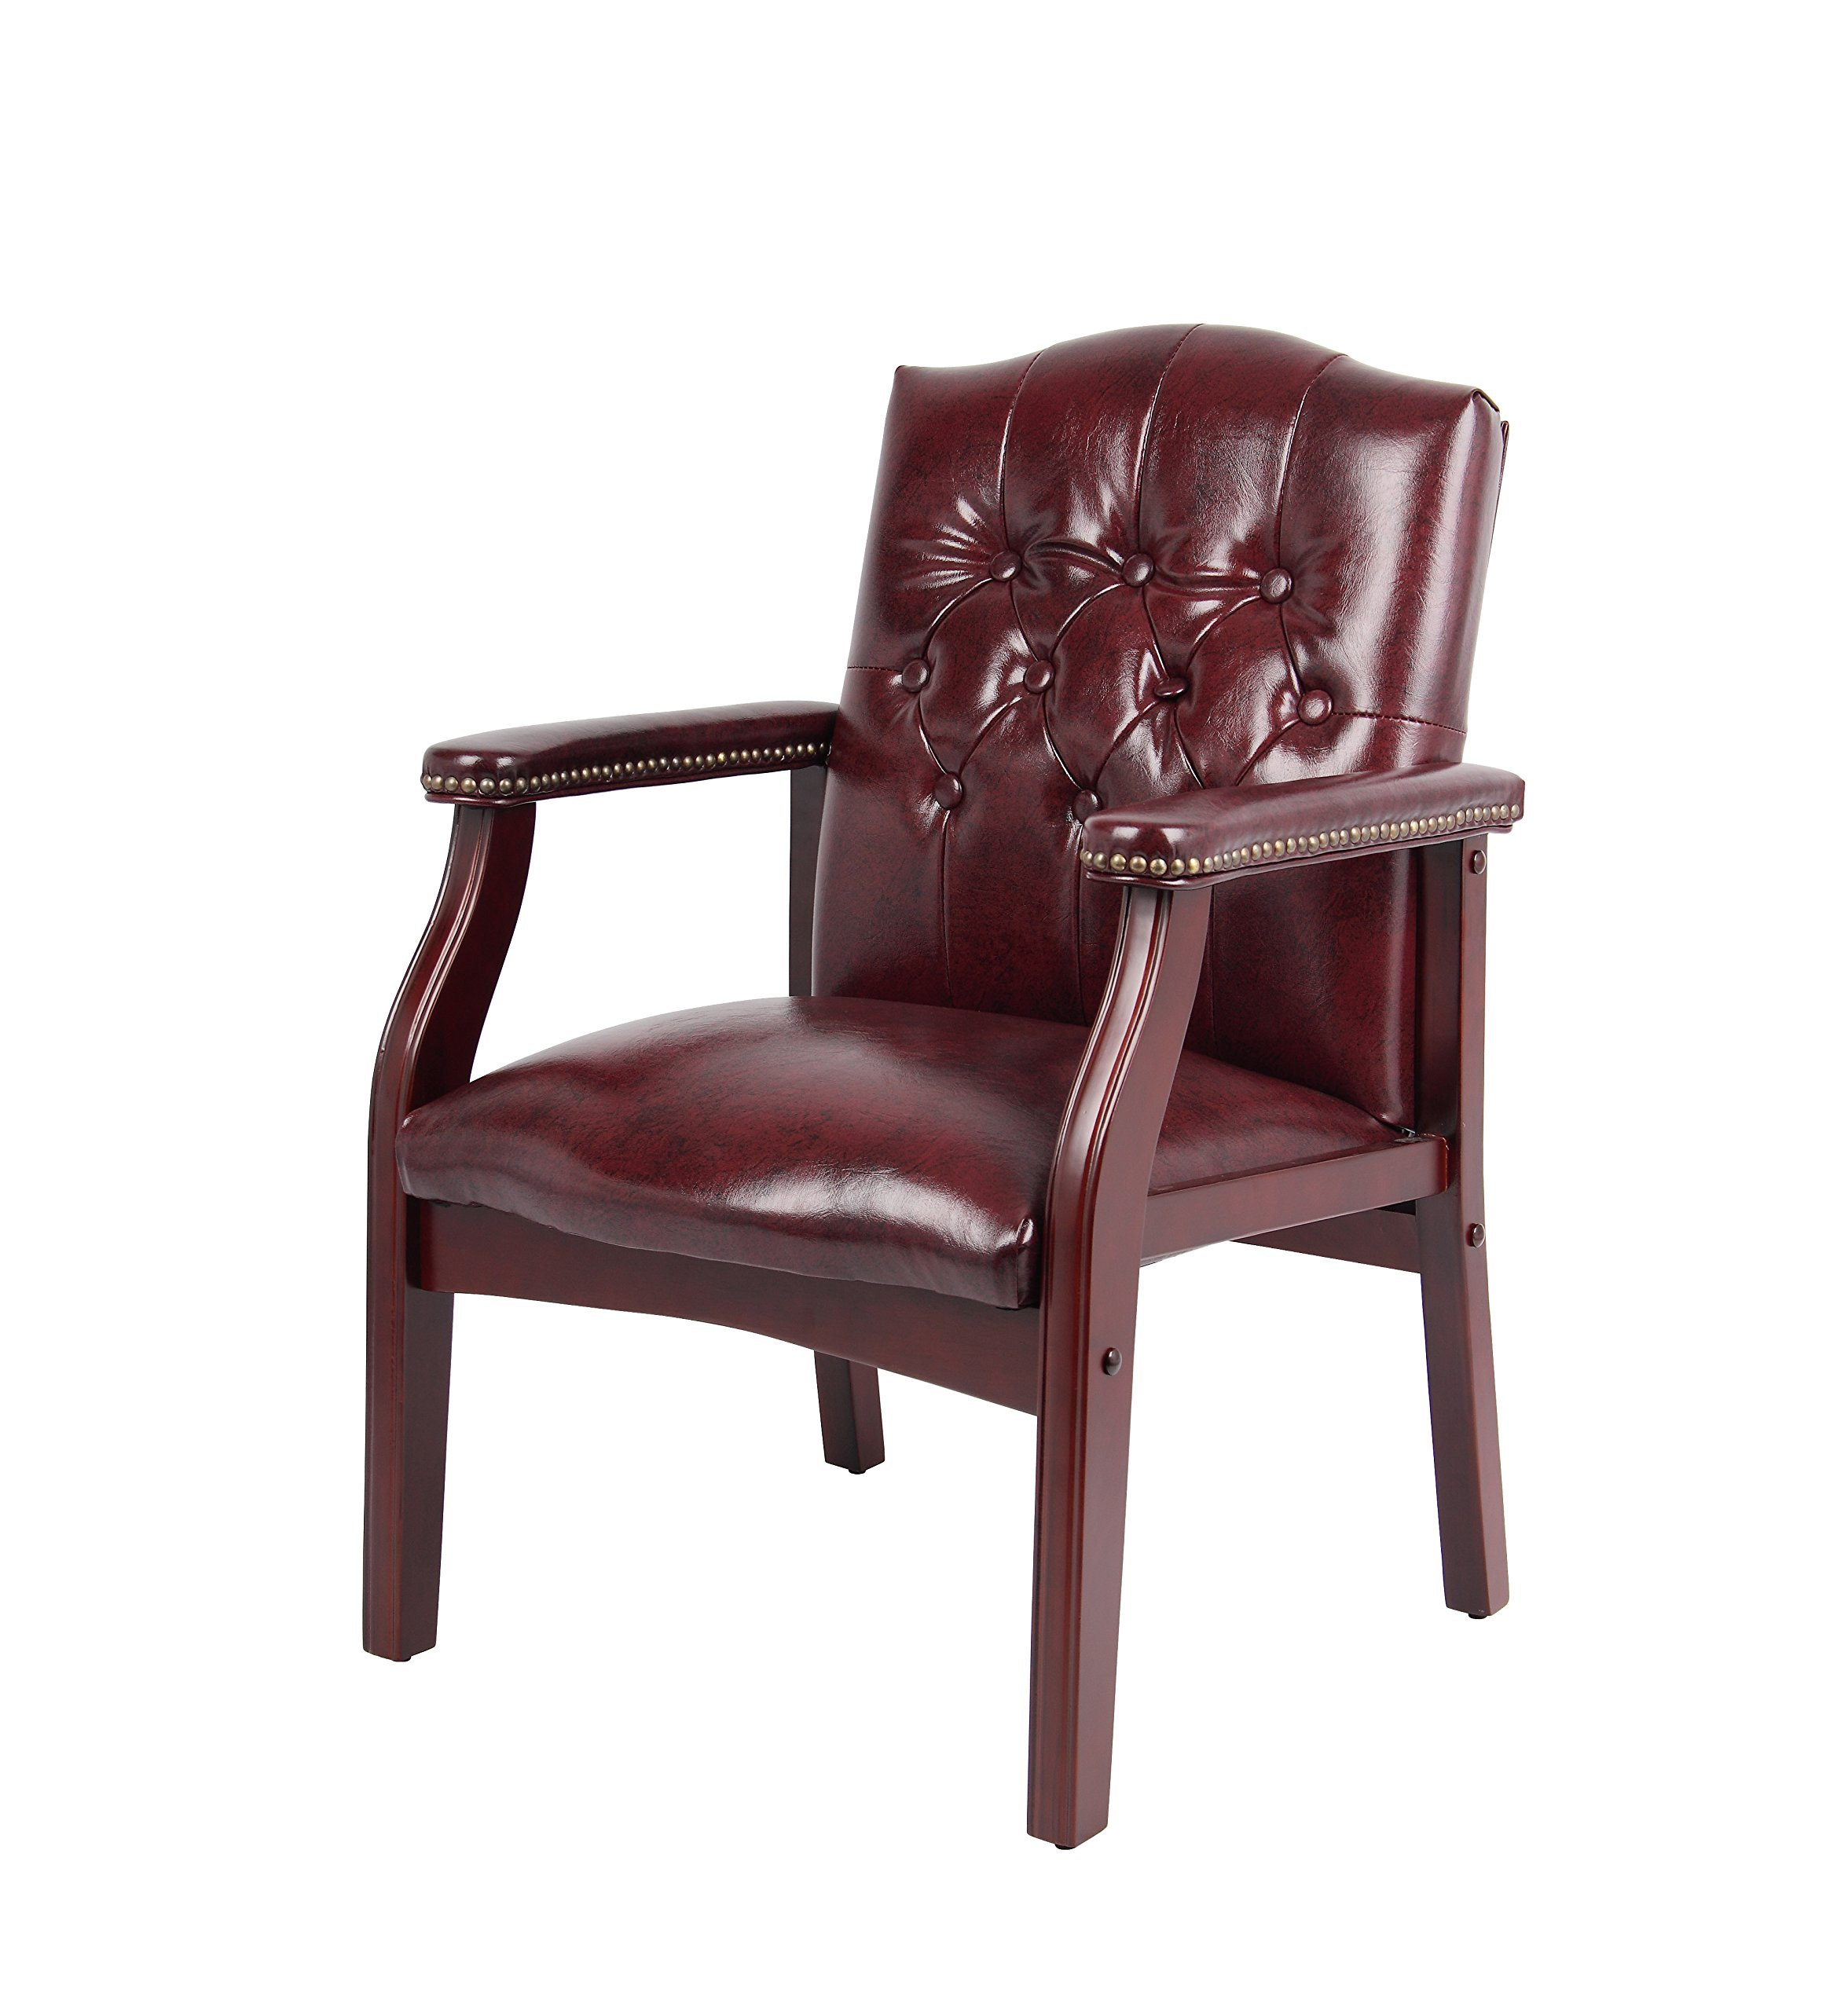 Boss Office Products B959-BY Ivy League Executive Guest Chair in Burgundy by Boss Office Products (Image #4)